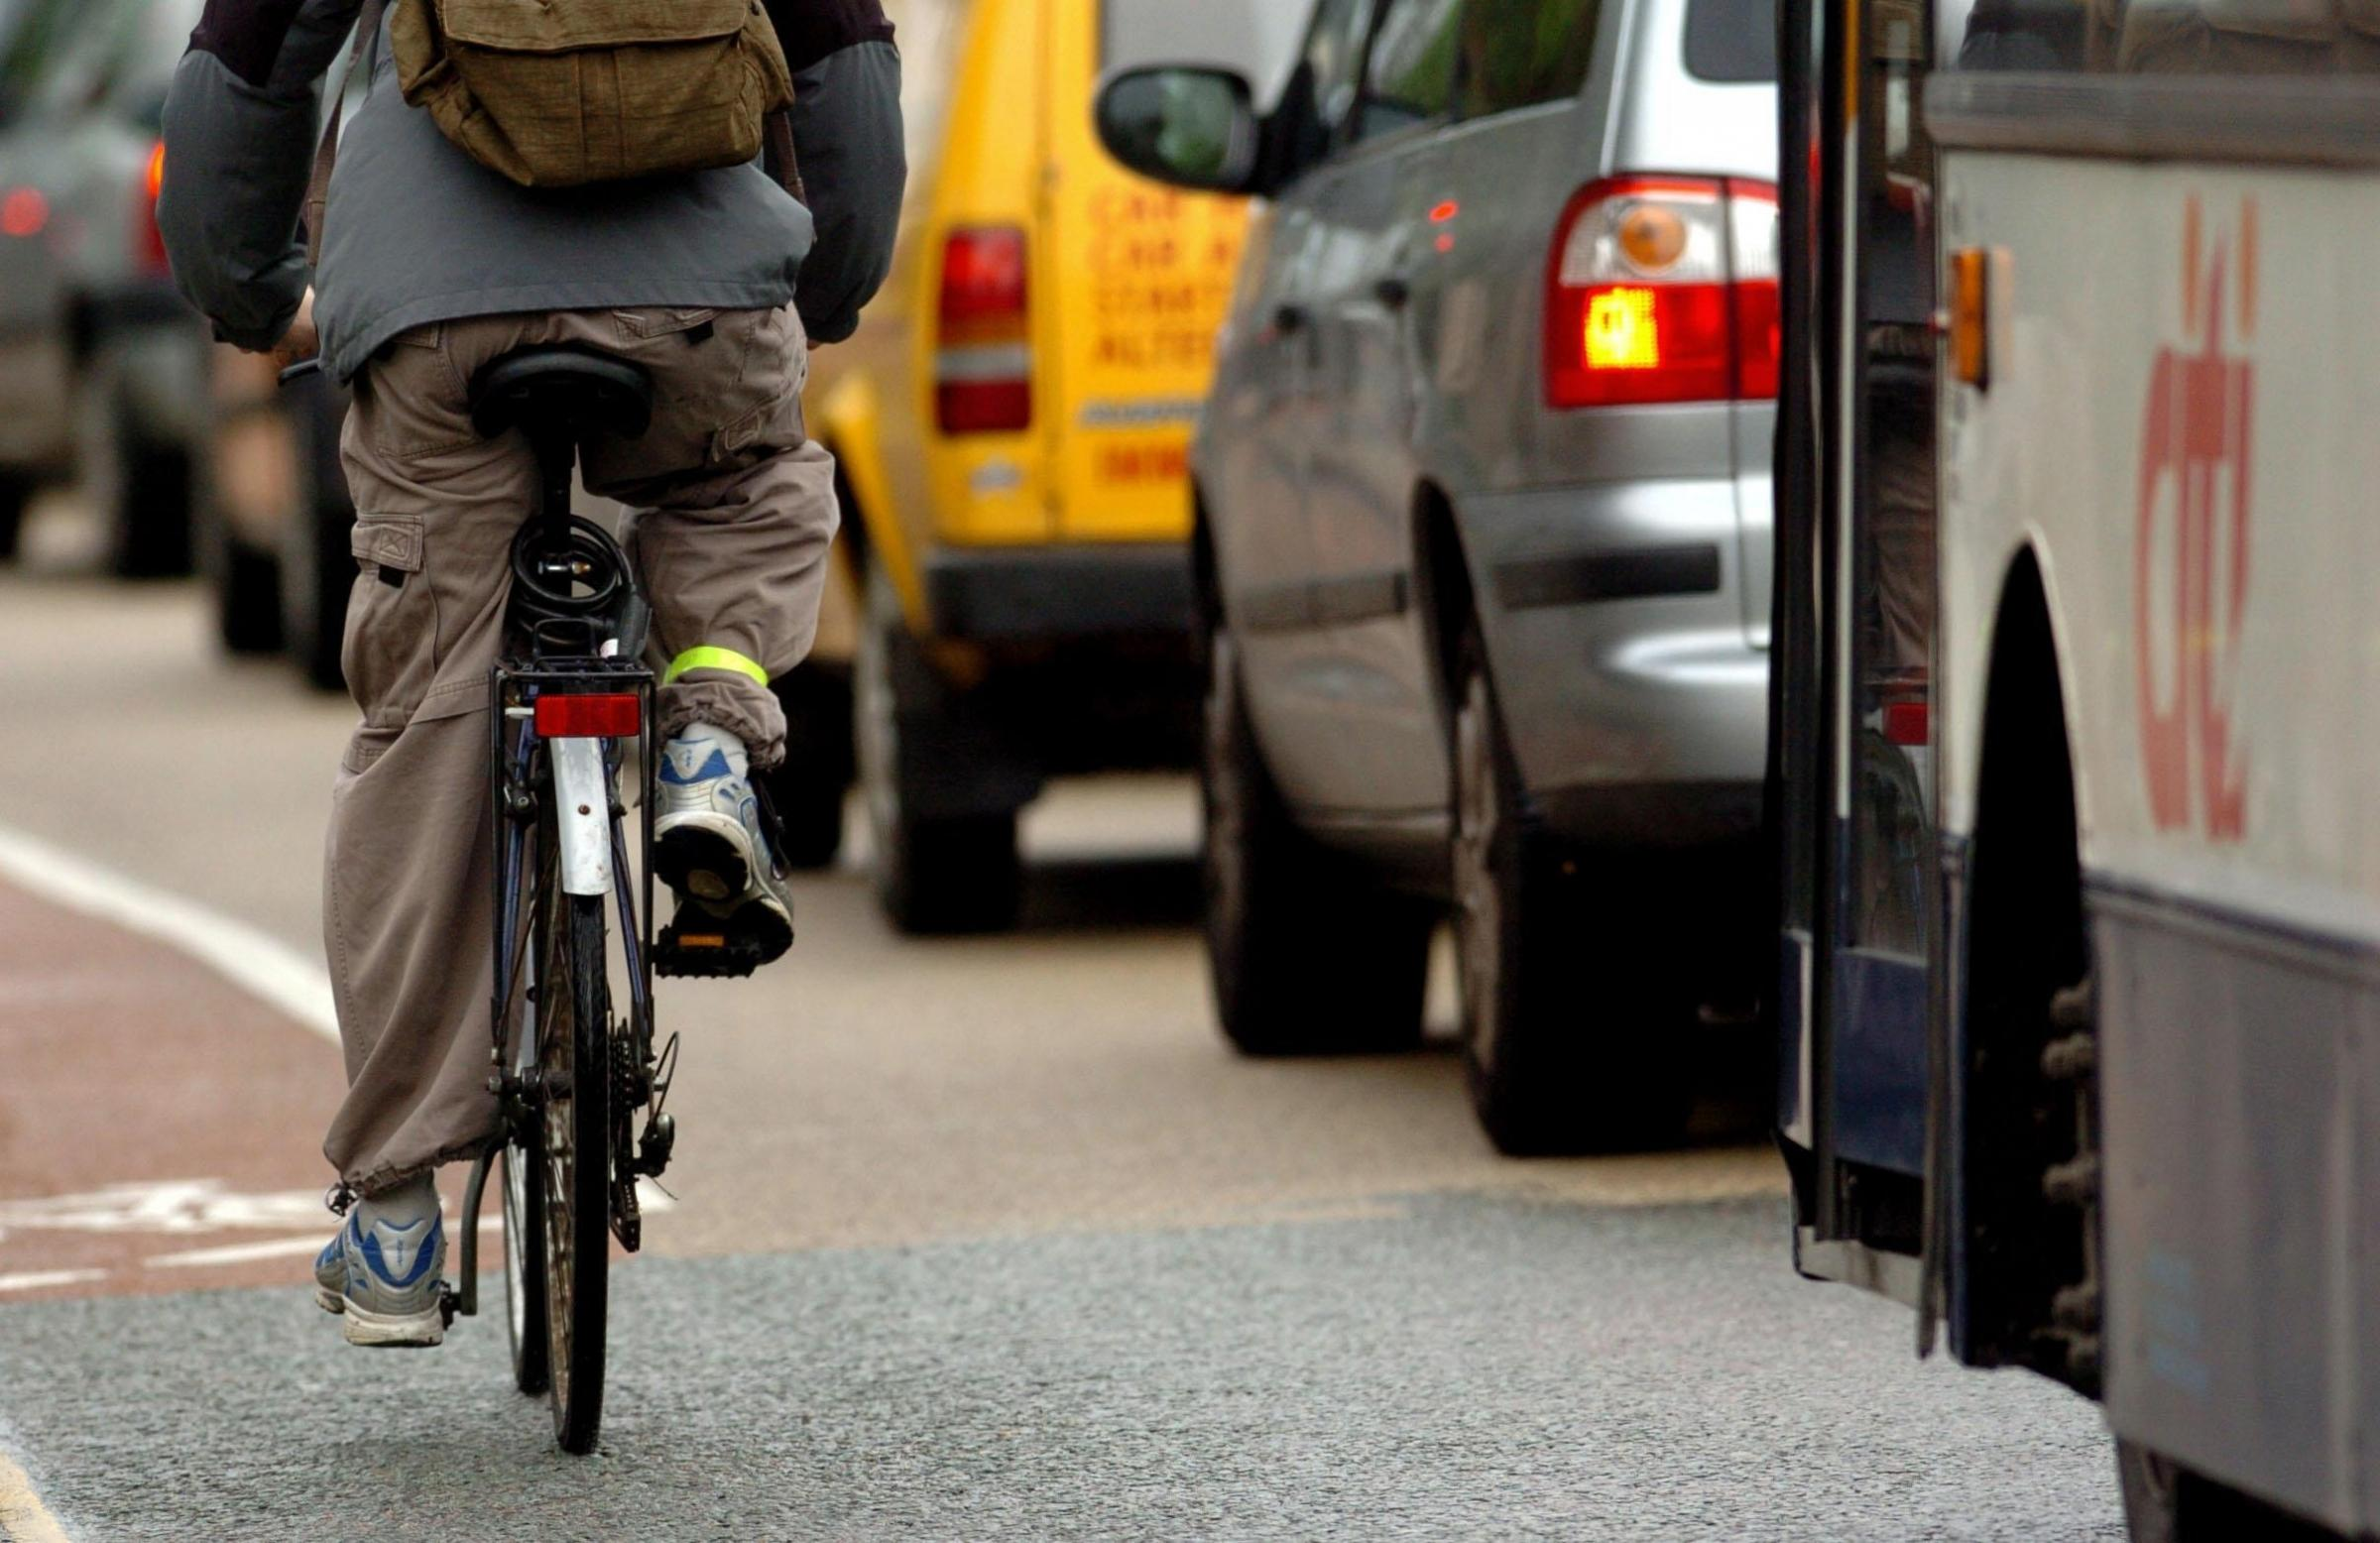 File photo dated 08/05/06 of a cyclist next to heavy traffic in Cambridge. PRESS ASSOCIATION Photo. Issue date: Thursday December 3, 2009. Cycling in England is much more hazardous than car travel, with June the worst month for those on two wheels, accord